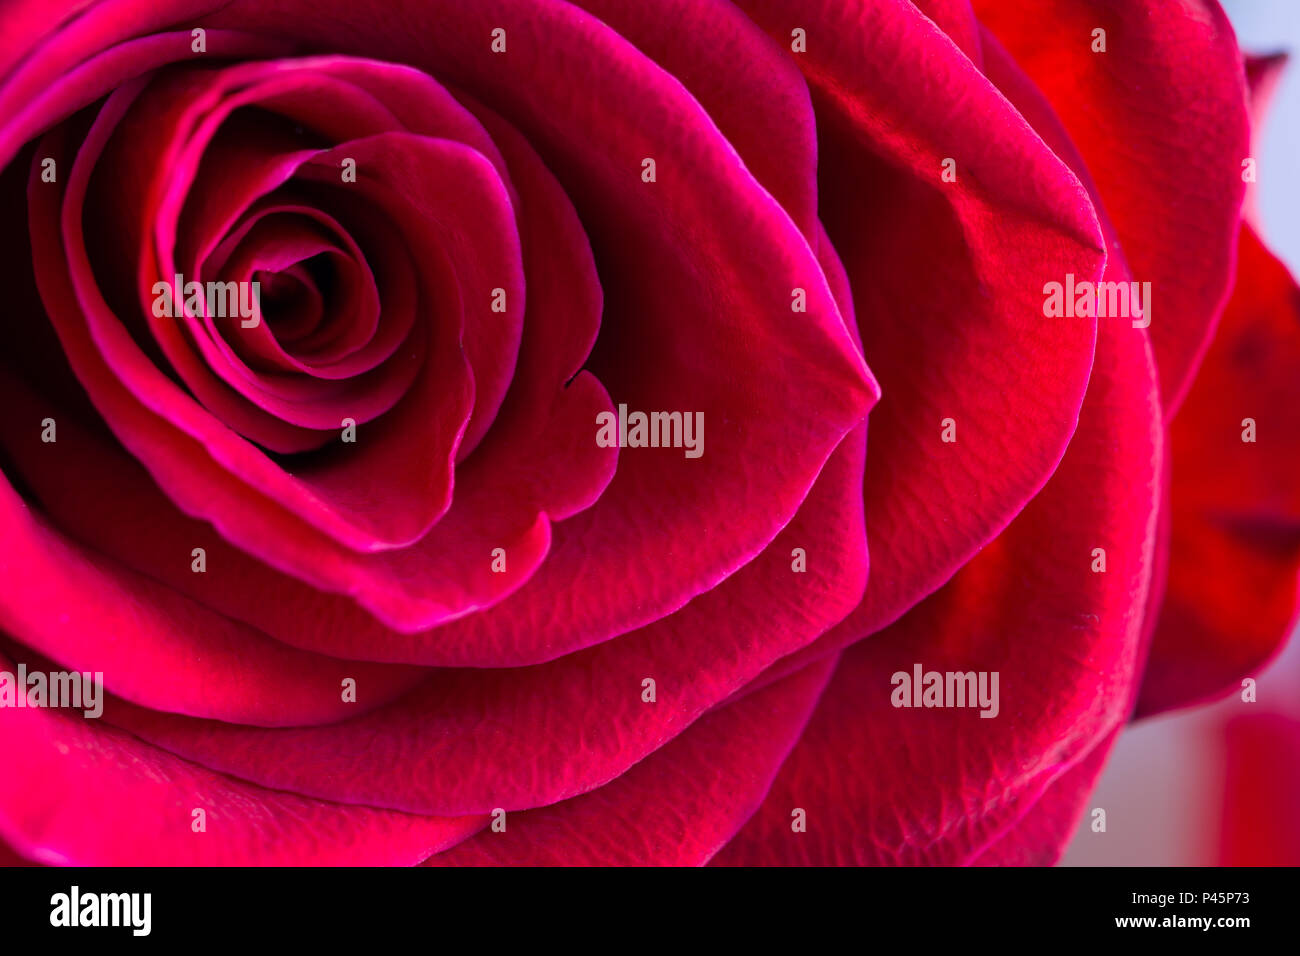 Macro of centre of beautiful, velvety red rose - Stock Image